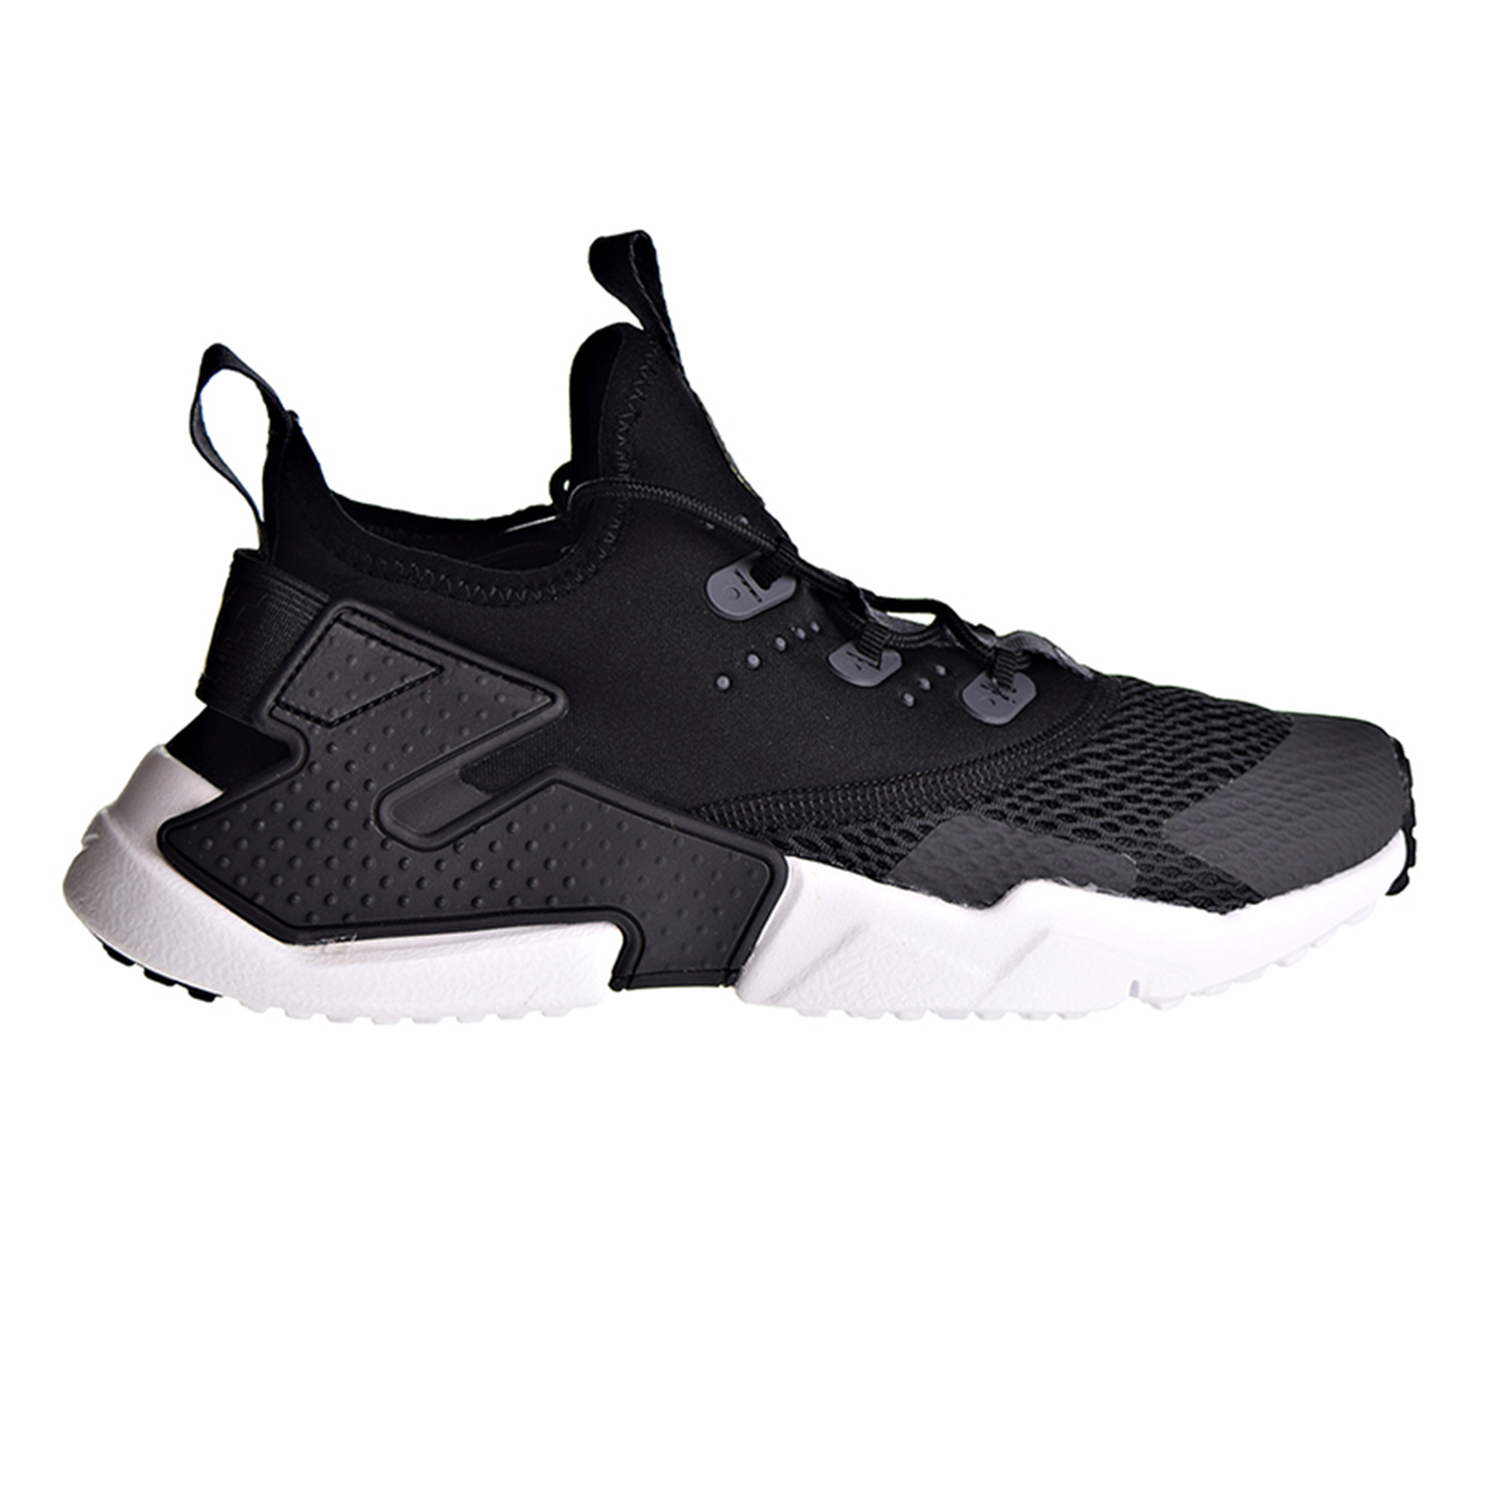 new products 977db 431bb Details about Nike Huarache Drift Big Kid s Shoes Black Anthracite  943344-008